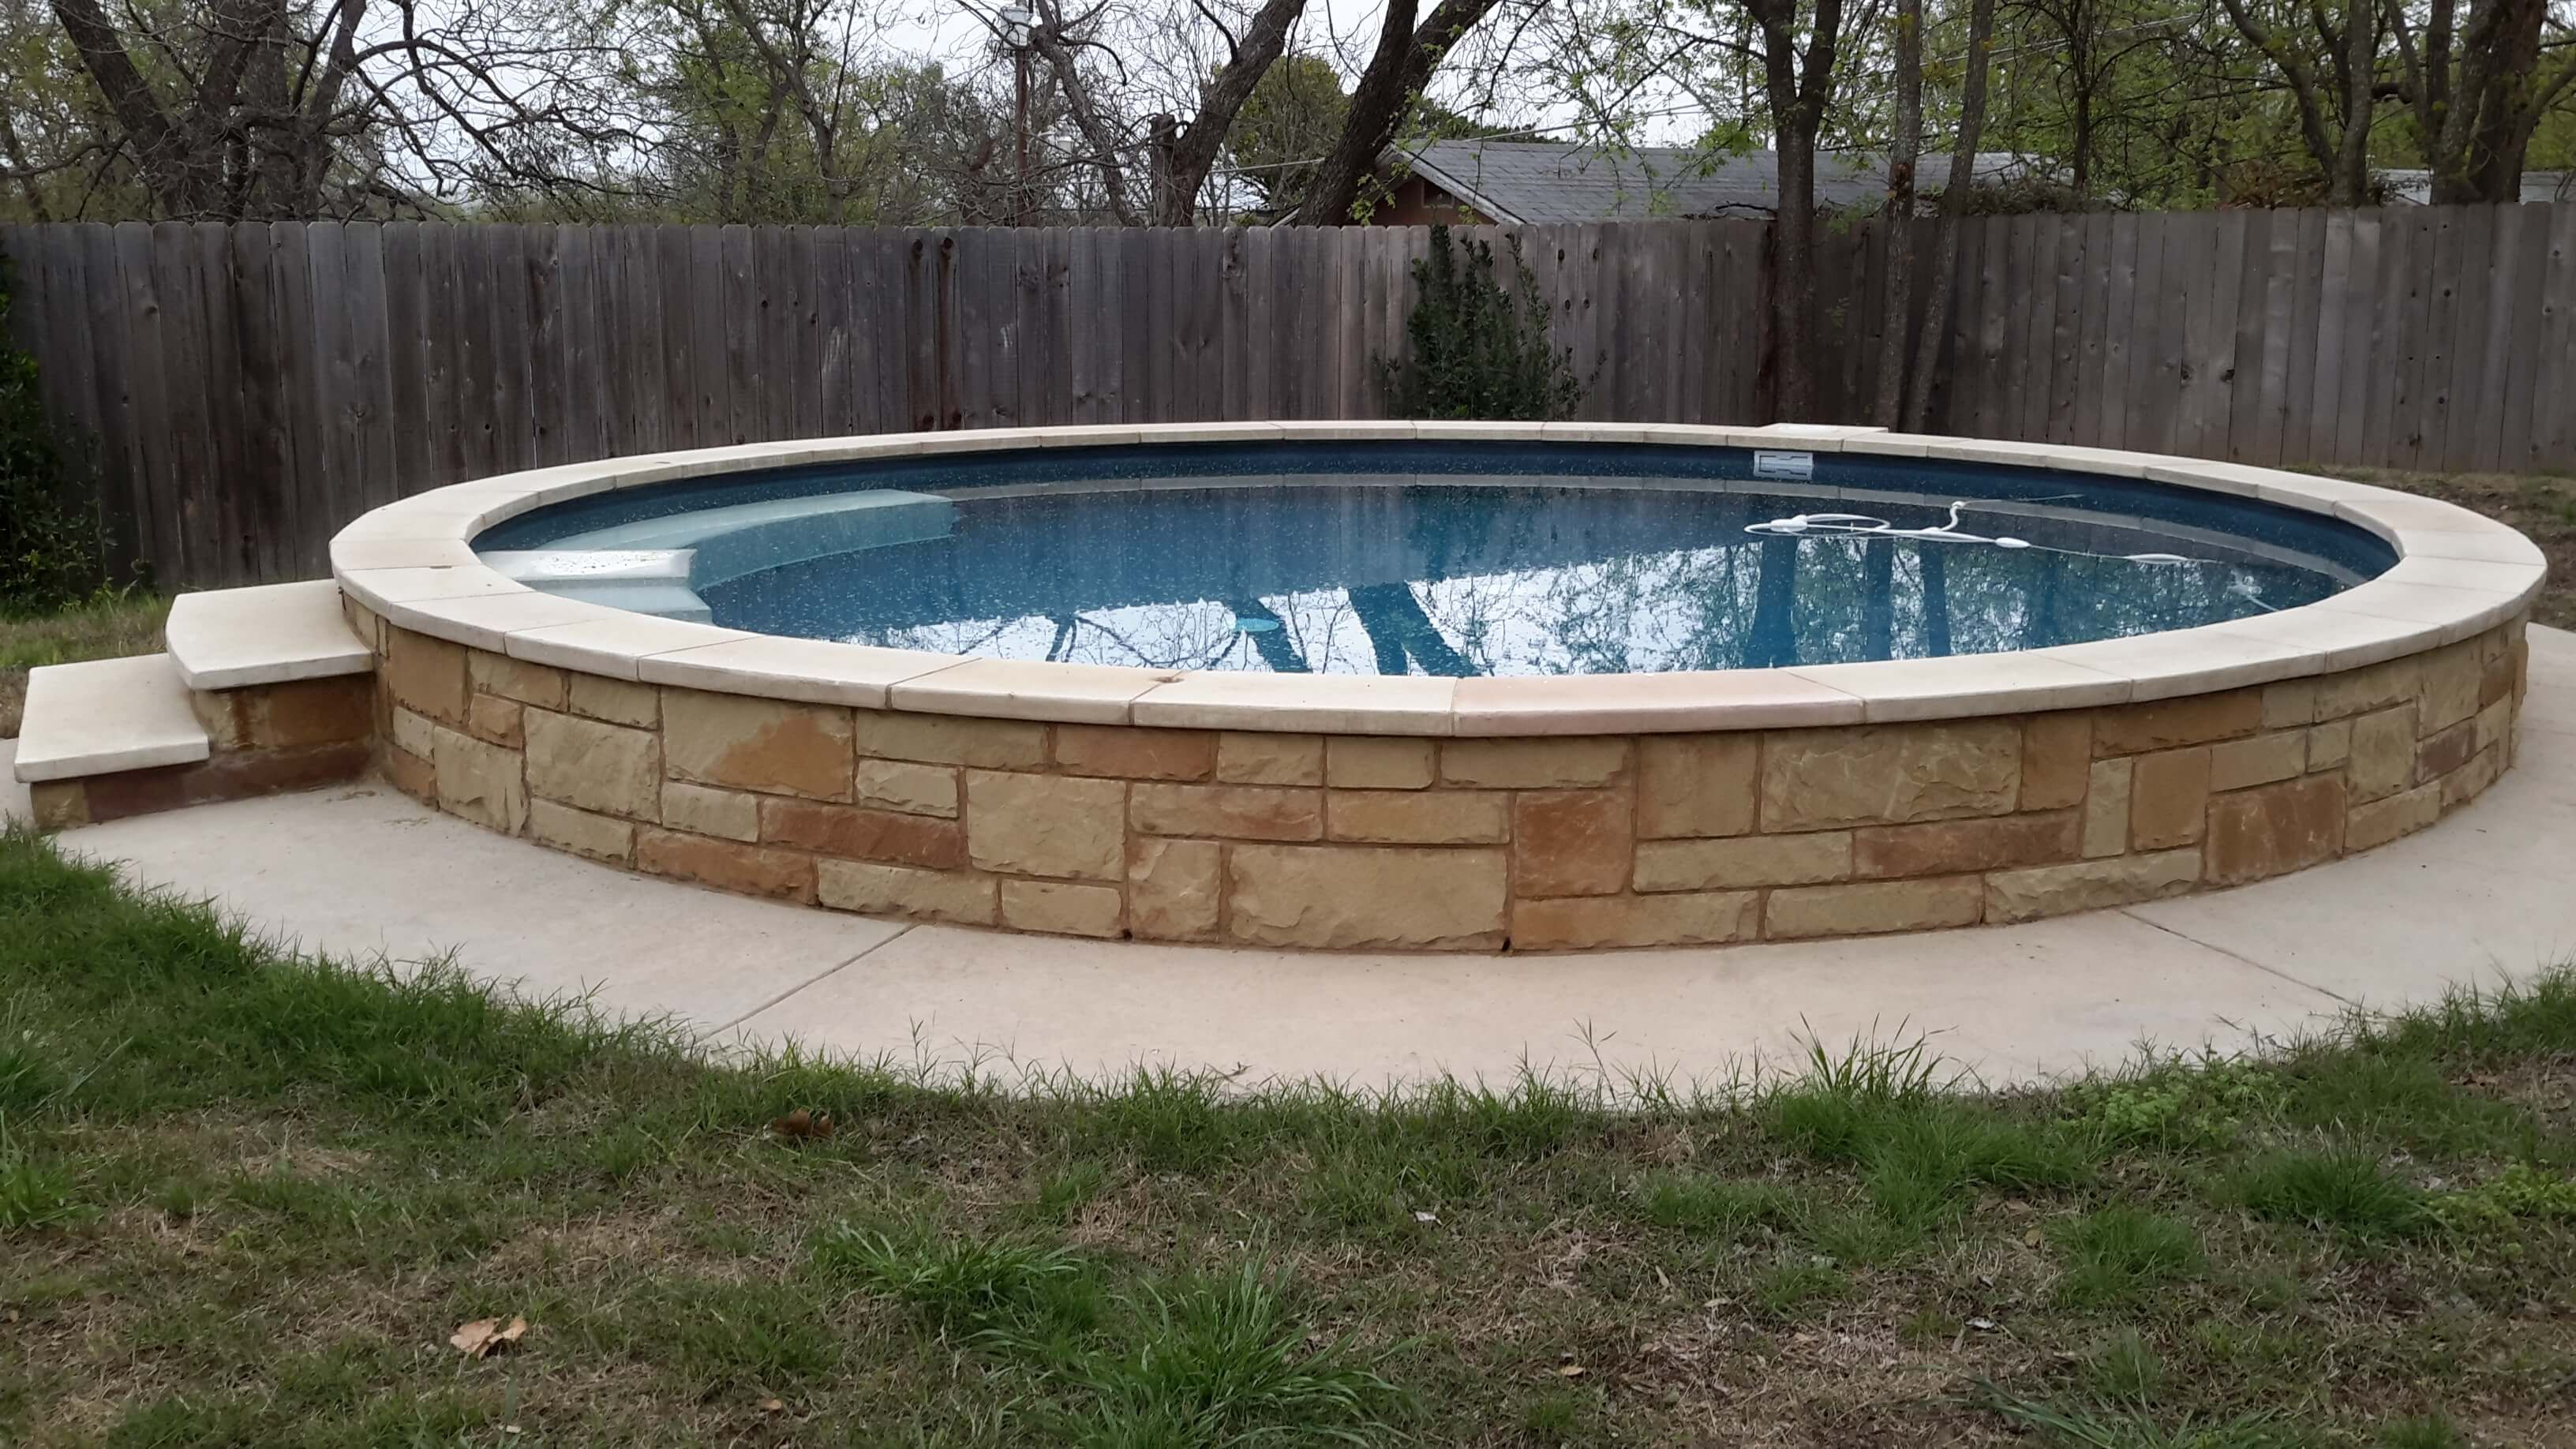 Pool Bauen 8 X 4 Pool From Stock Tank 21 Inexpensive Pools In 2019 Stock Tank